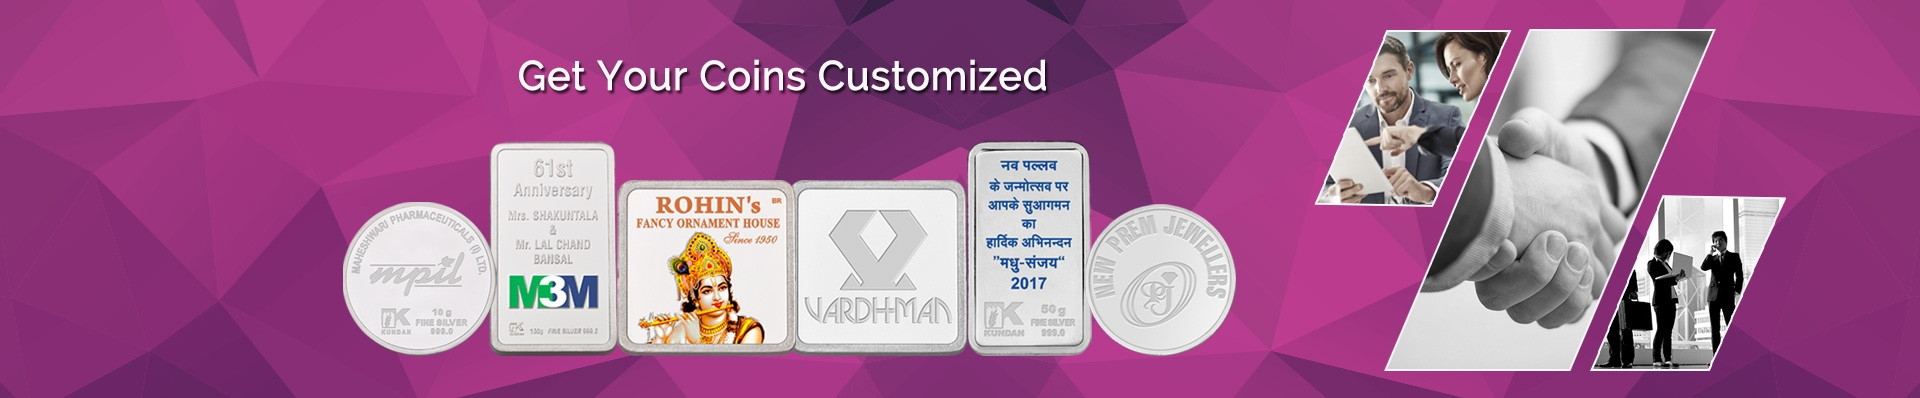 Customized Coins